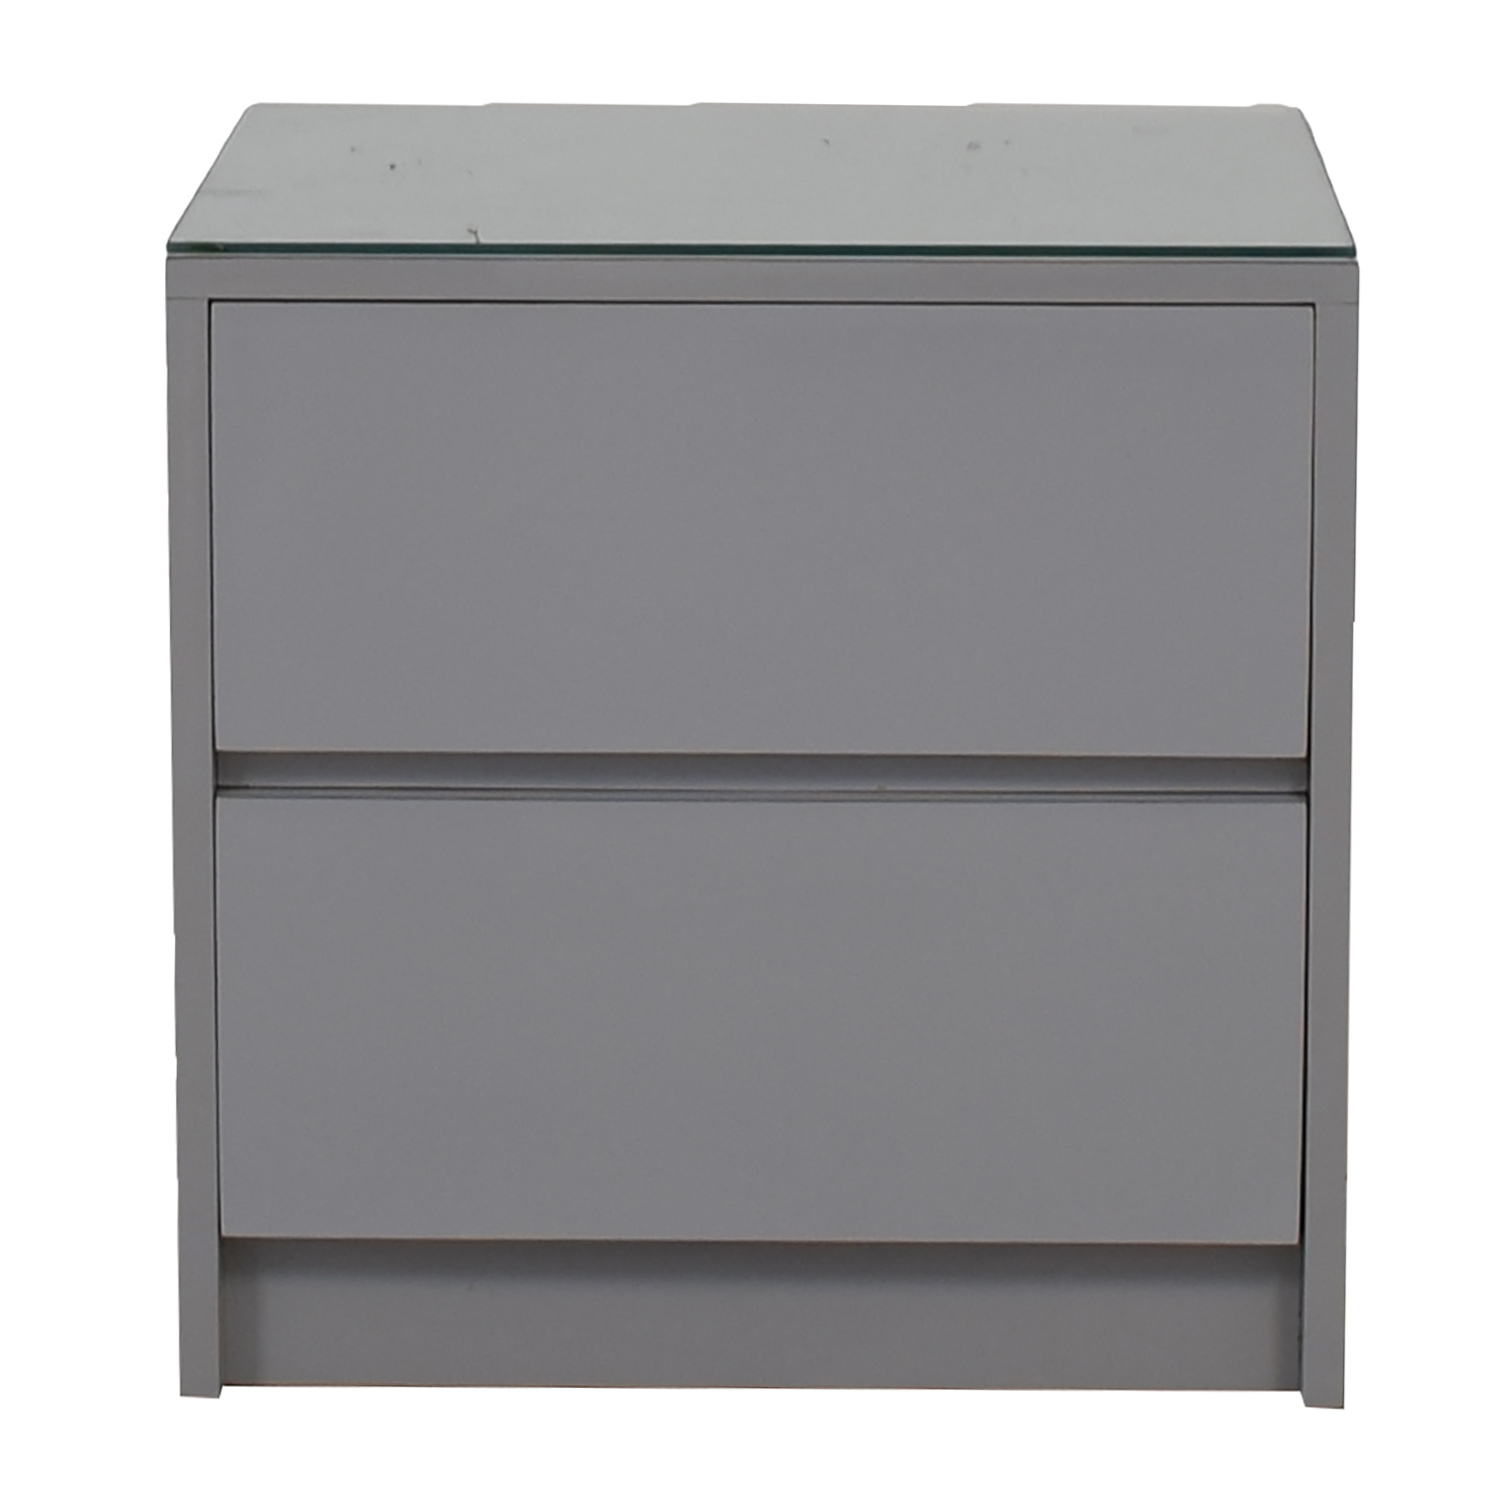 Gray Formica Two-Drawer Glass Top Nightstand for sale